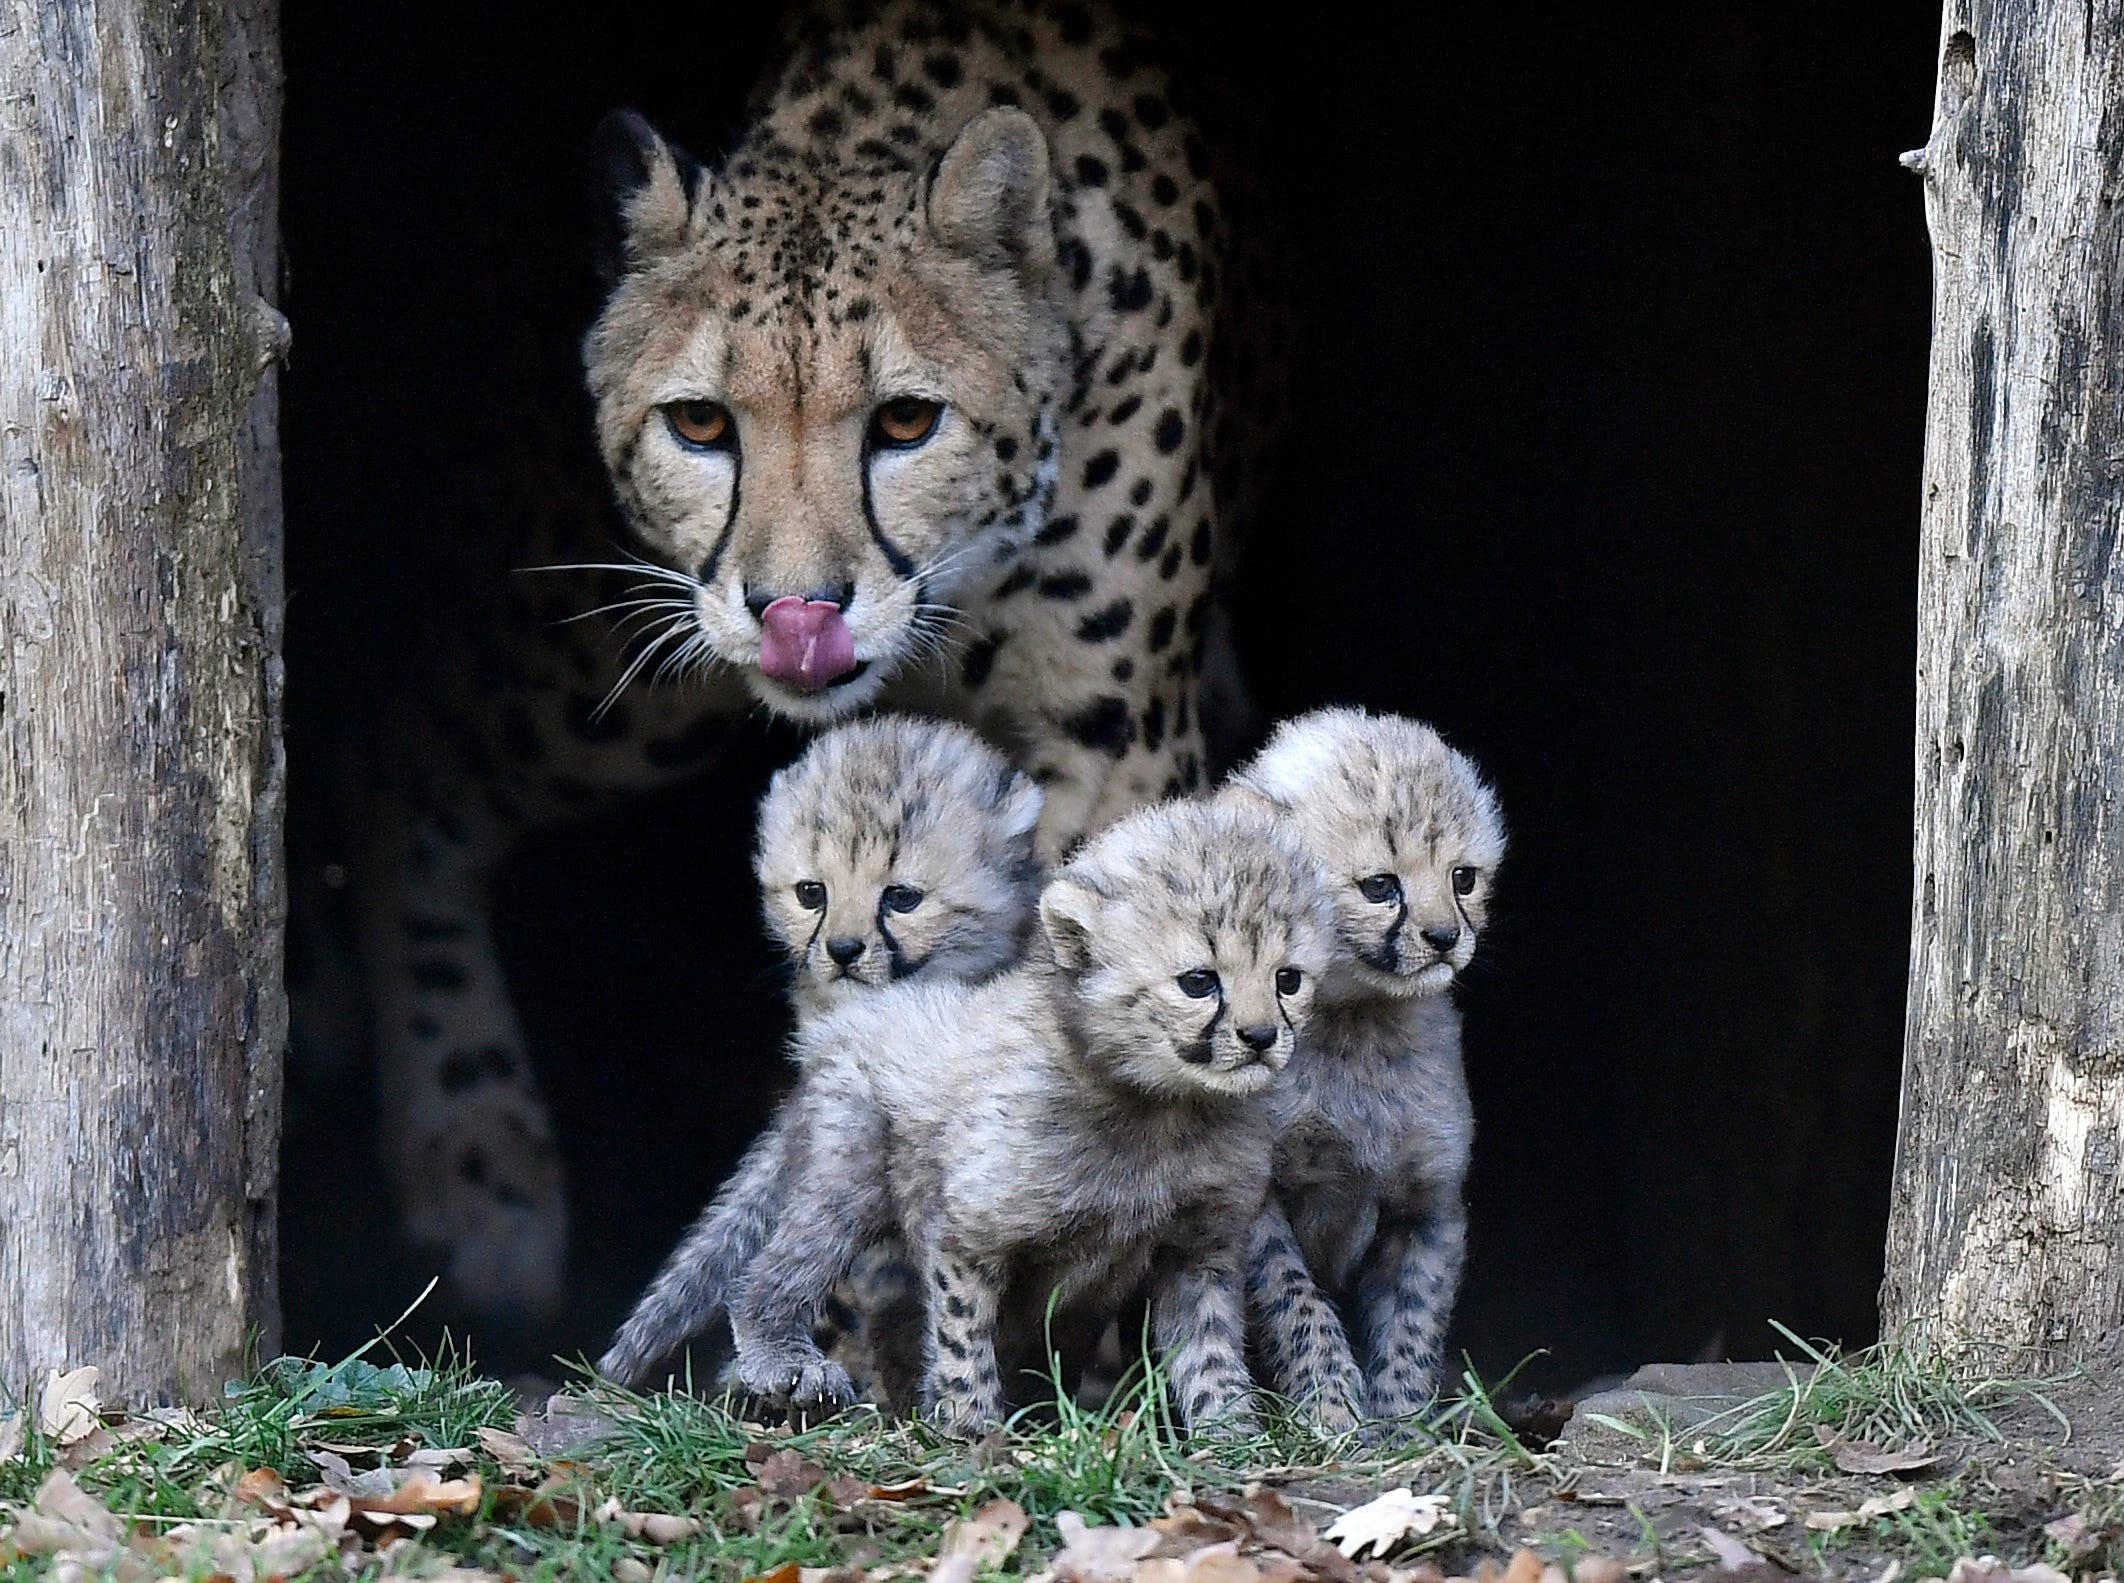 Cheetah mother Isantya looks at its three little babys at their enclosure at the zoo in Muenster, Germany, Friday, Nov. 9, 2018. The triplets were born on Oct.4, 2018 and start to explore their enclosure today. The zoo in Muenster is well known for the successful cheetah breed, about 50 of the endangered animals were born in the zoo since the seventies.